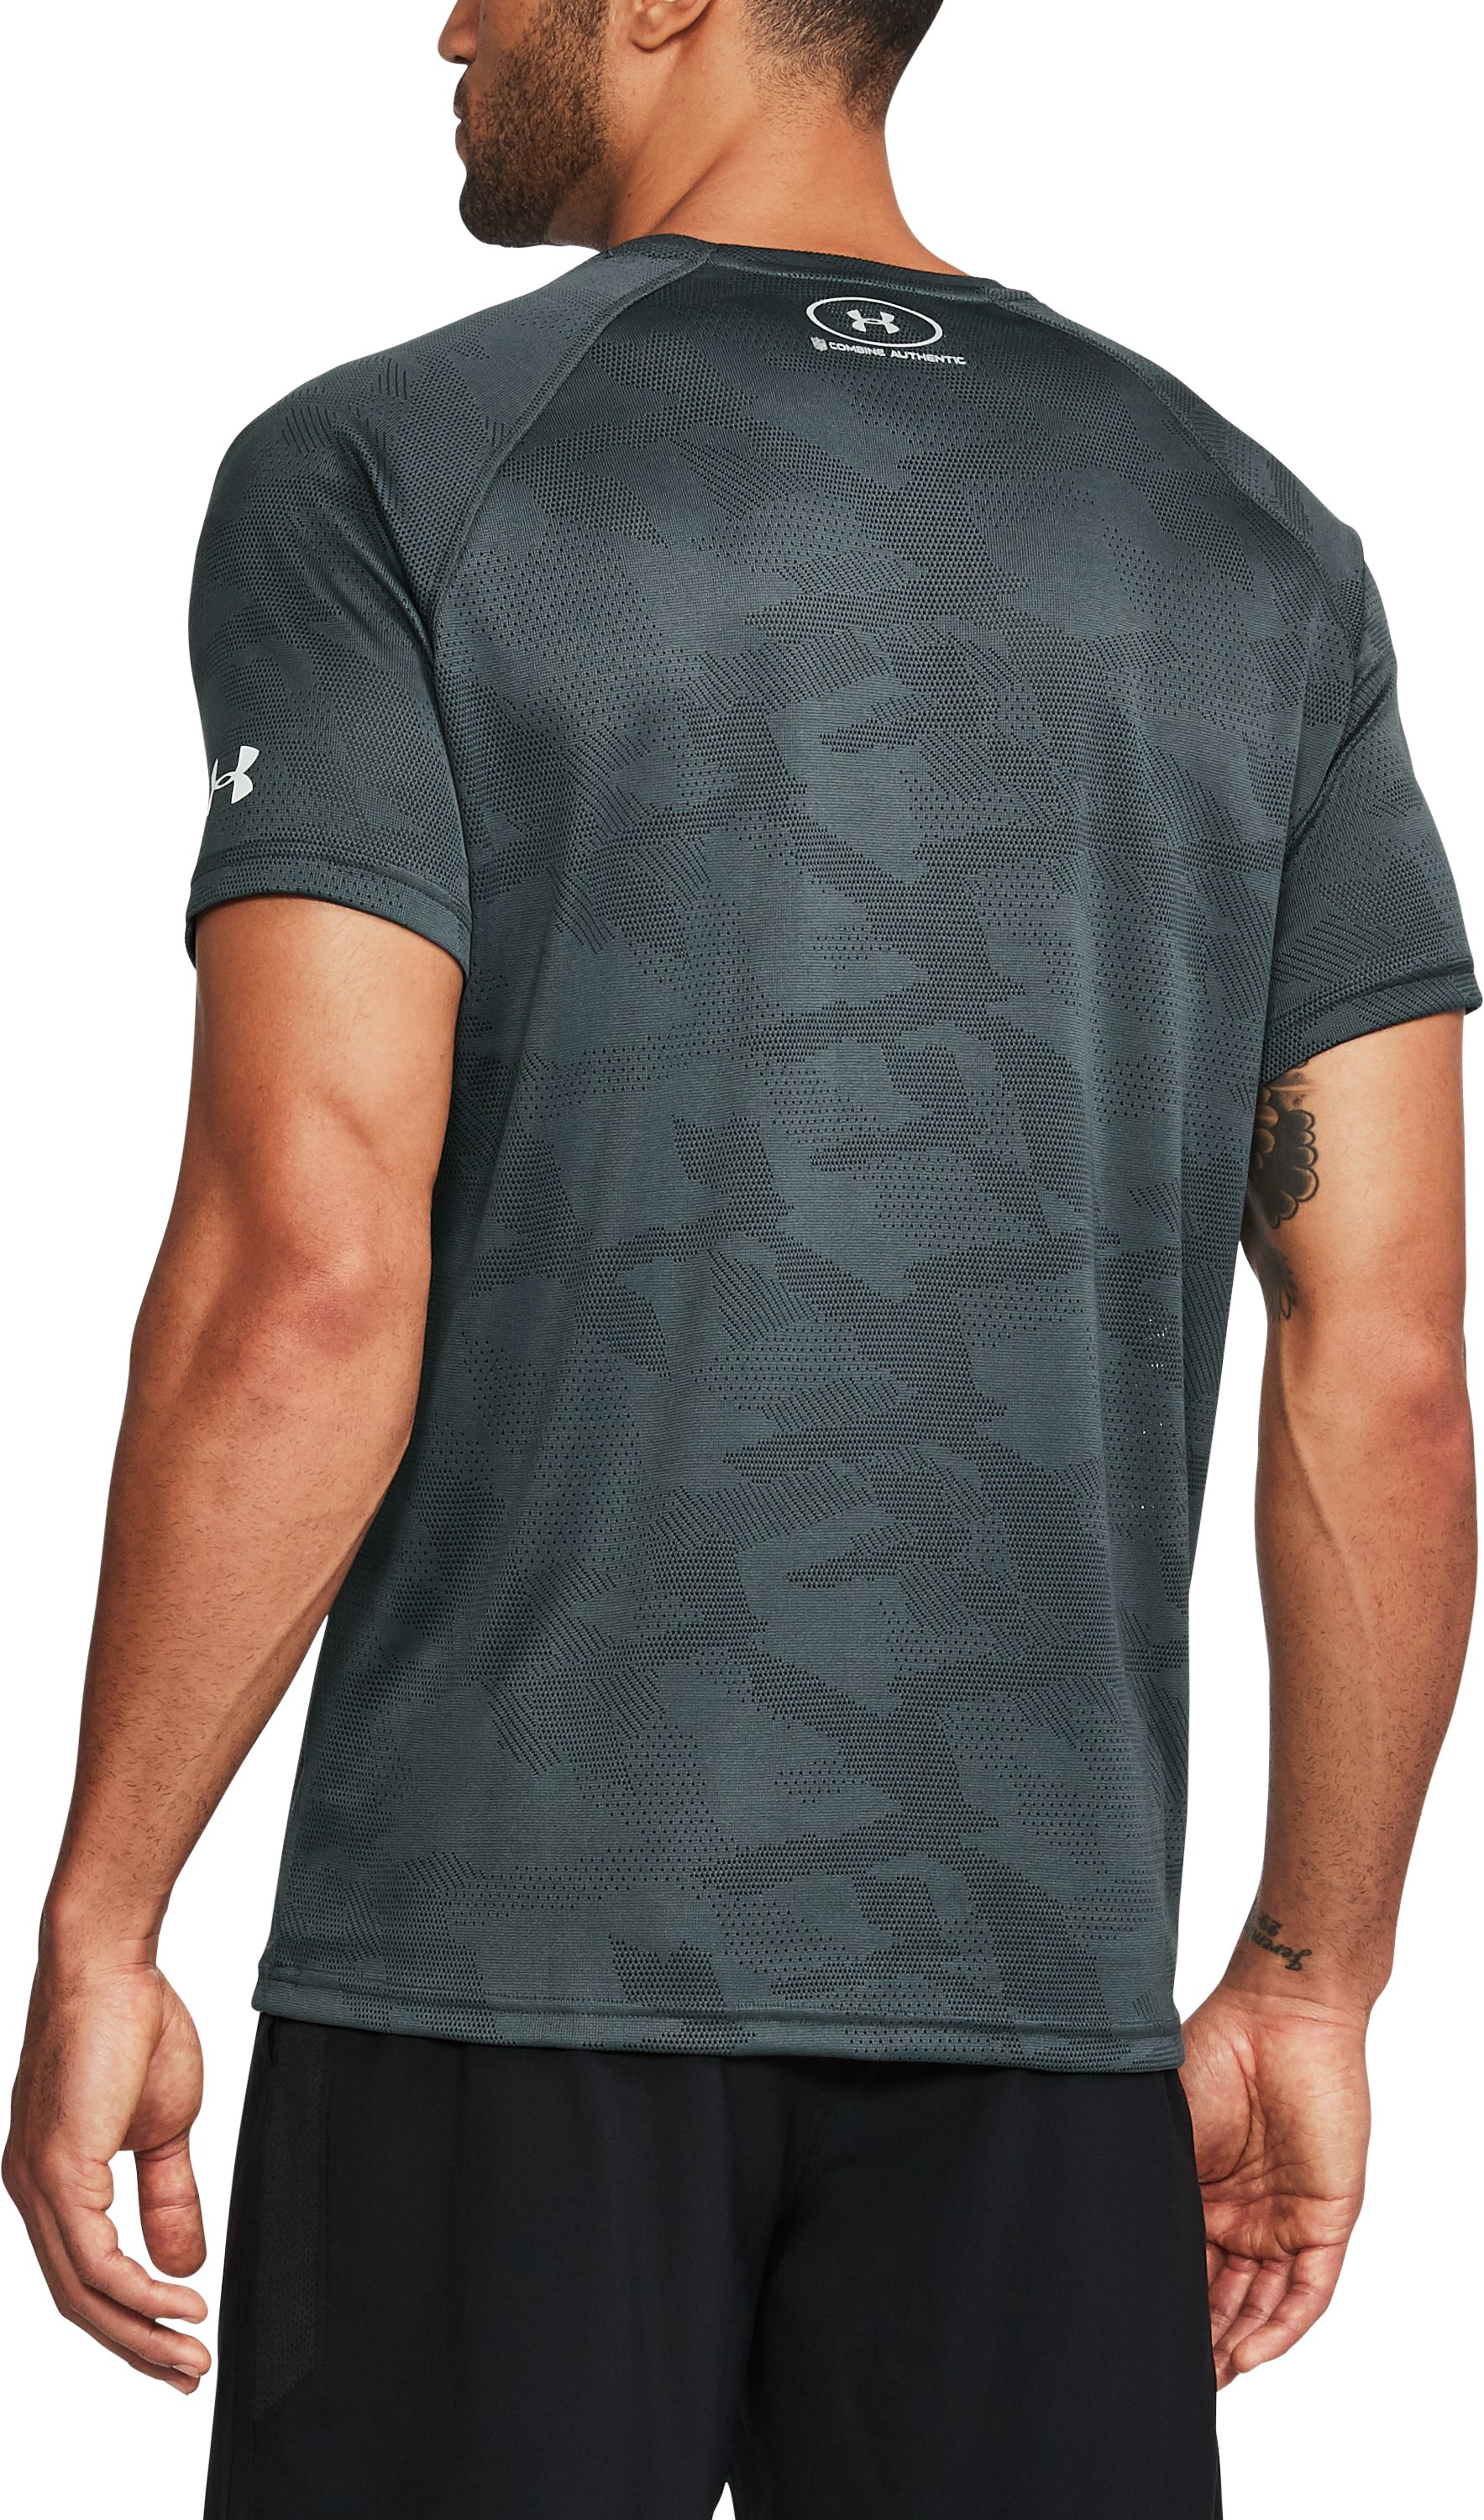 Men's NFL Combine Authentic UA Tech™ Jacquard T-Shirt , NFL_BALTIMORE RAVENS_STEALTH GRAY, undefined